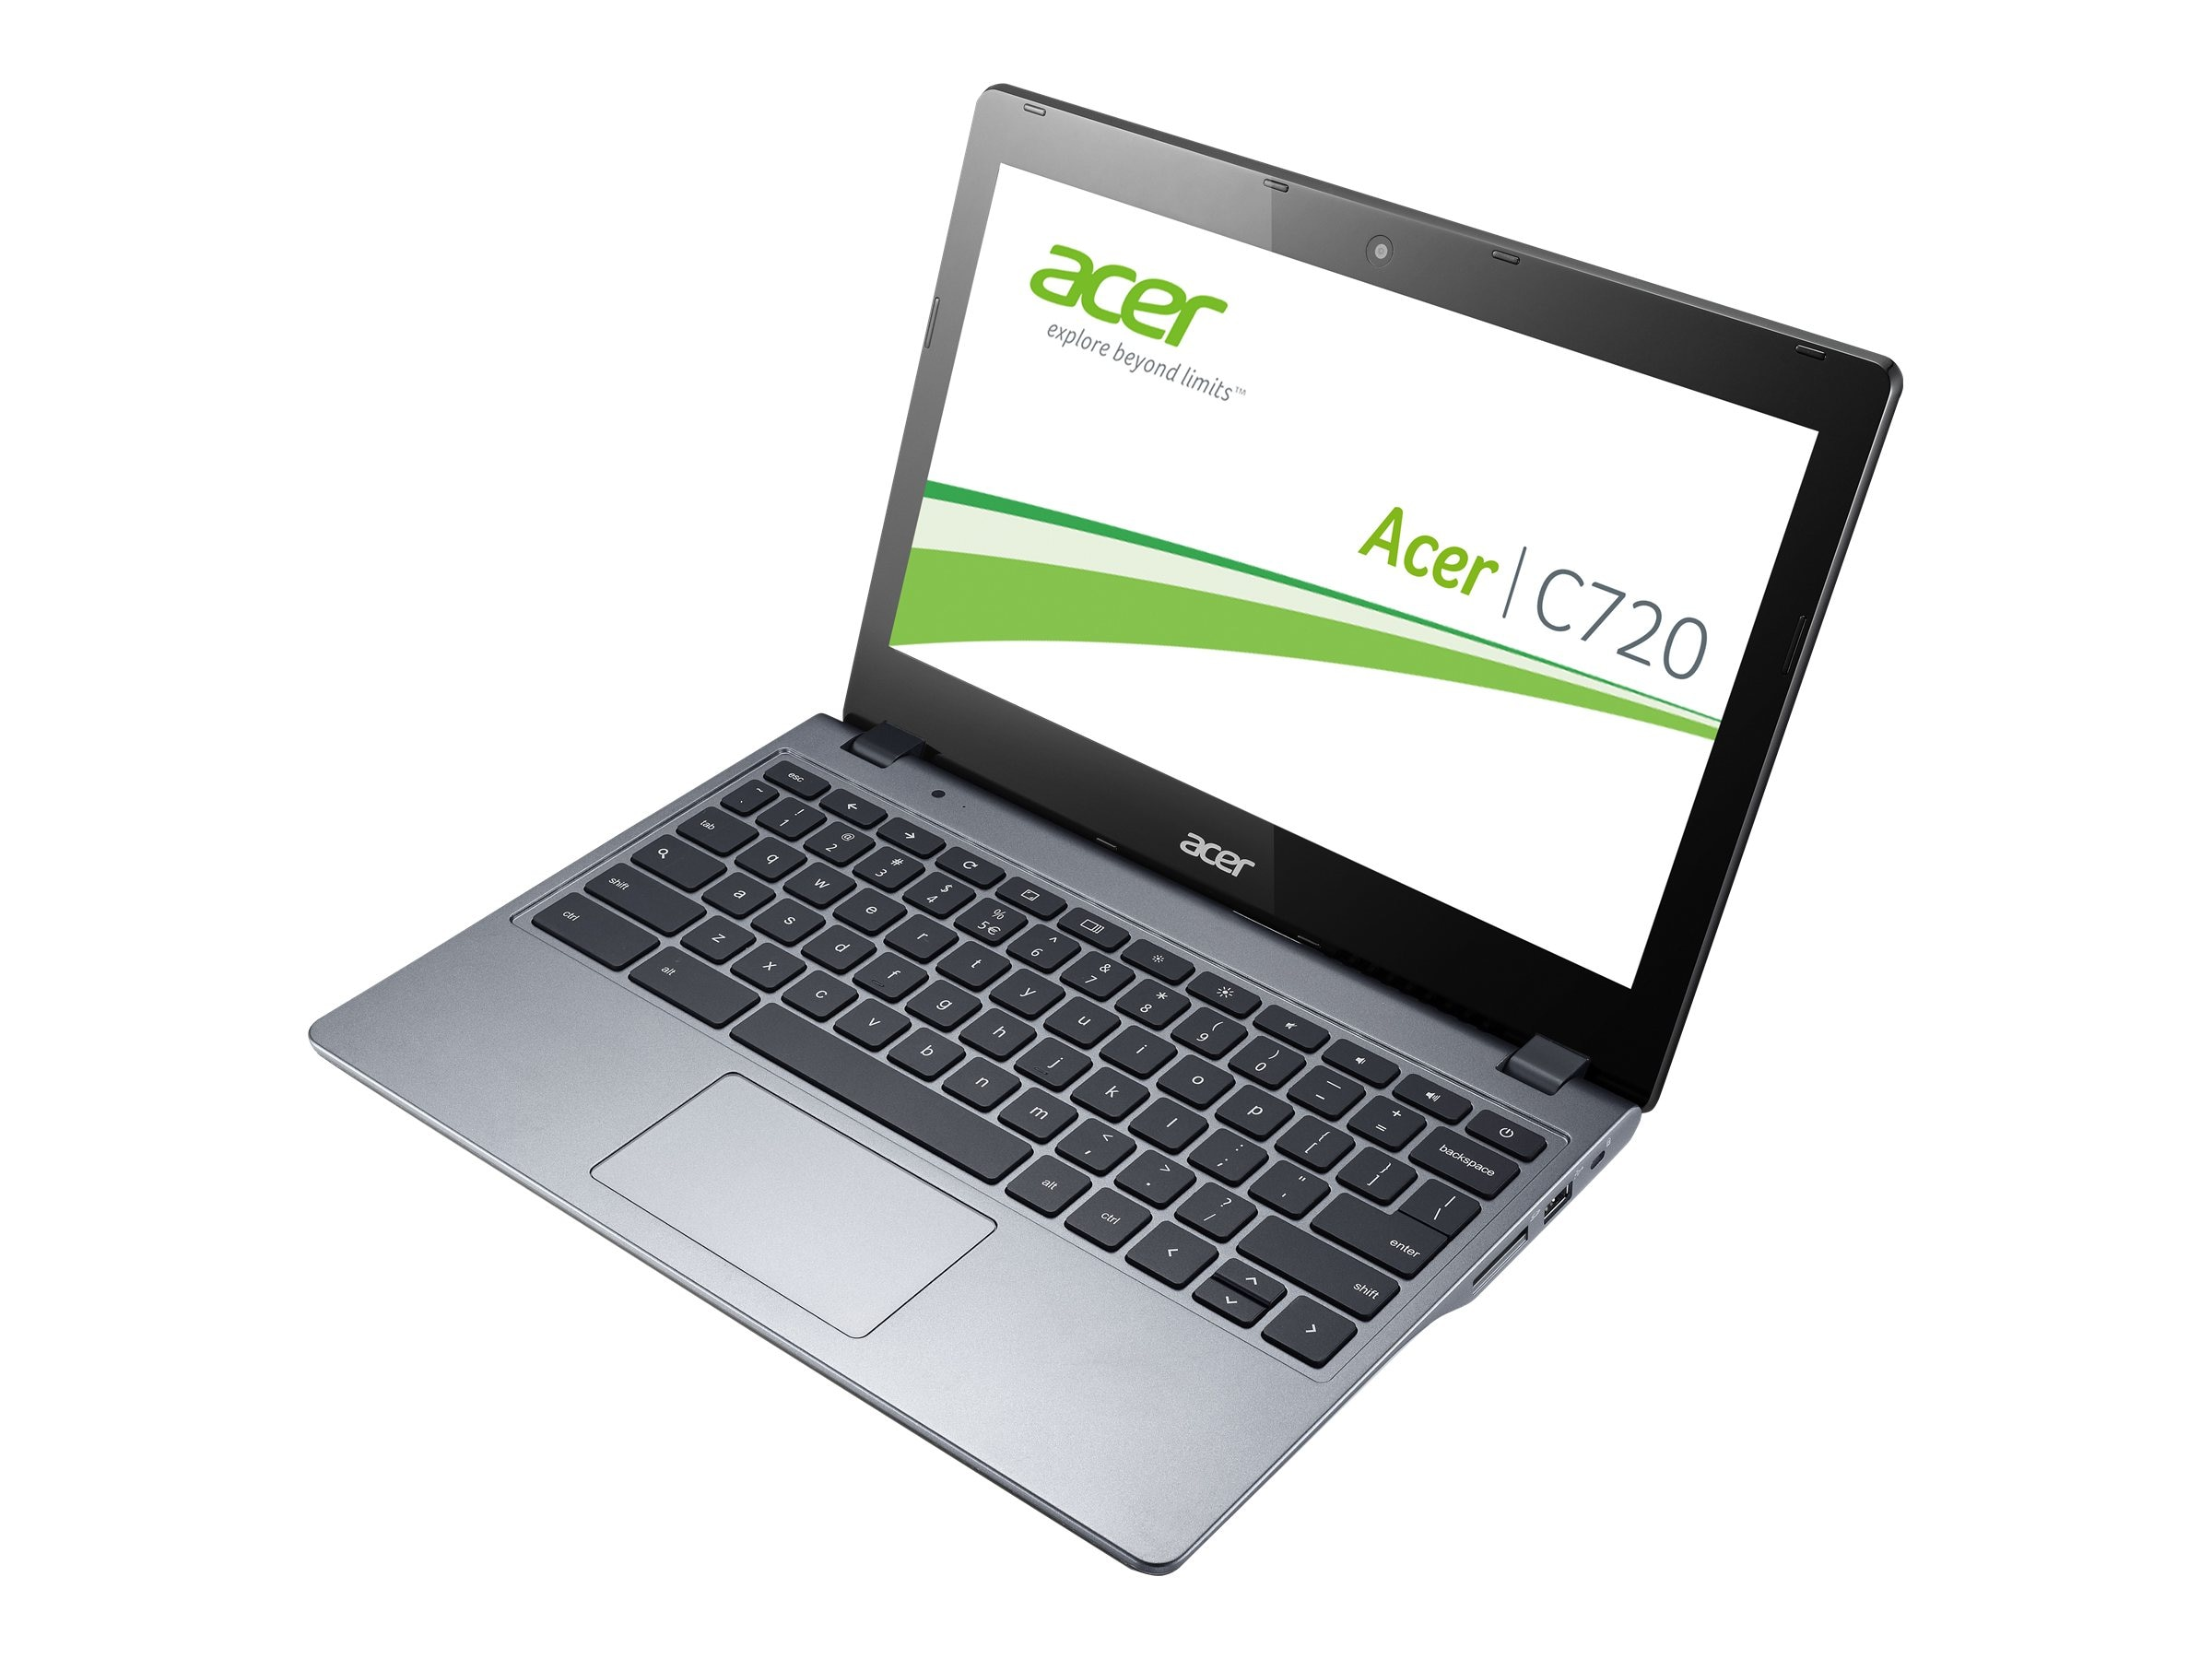 Scratch & Dent Acer Chromebook C720-2844 Celeron 2955U 1.4GHz 4GB 16GB SSD abgn BT WC 3C 11.6 HD ChromeOS, NX.SHEAA.004, 18219641, Notebooks